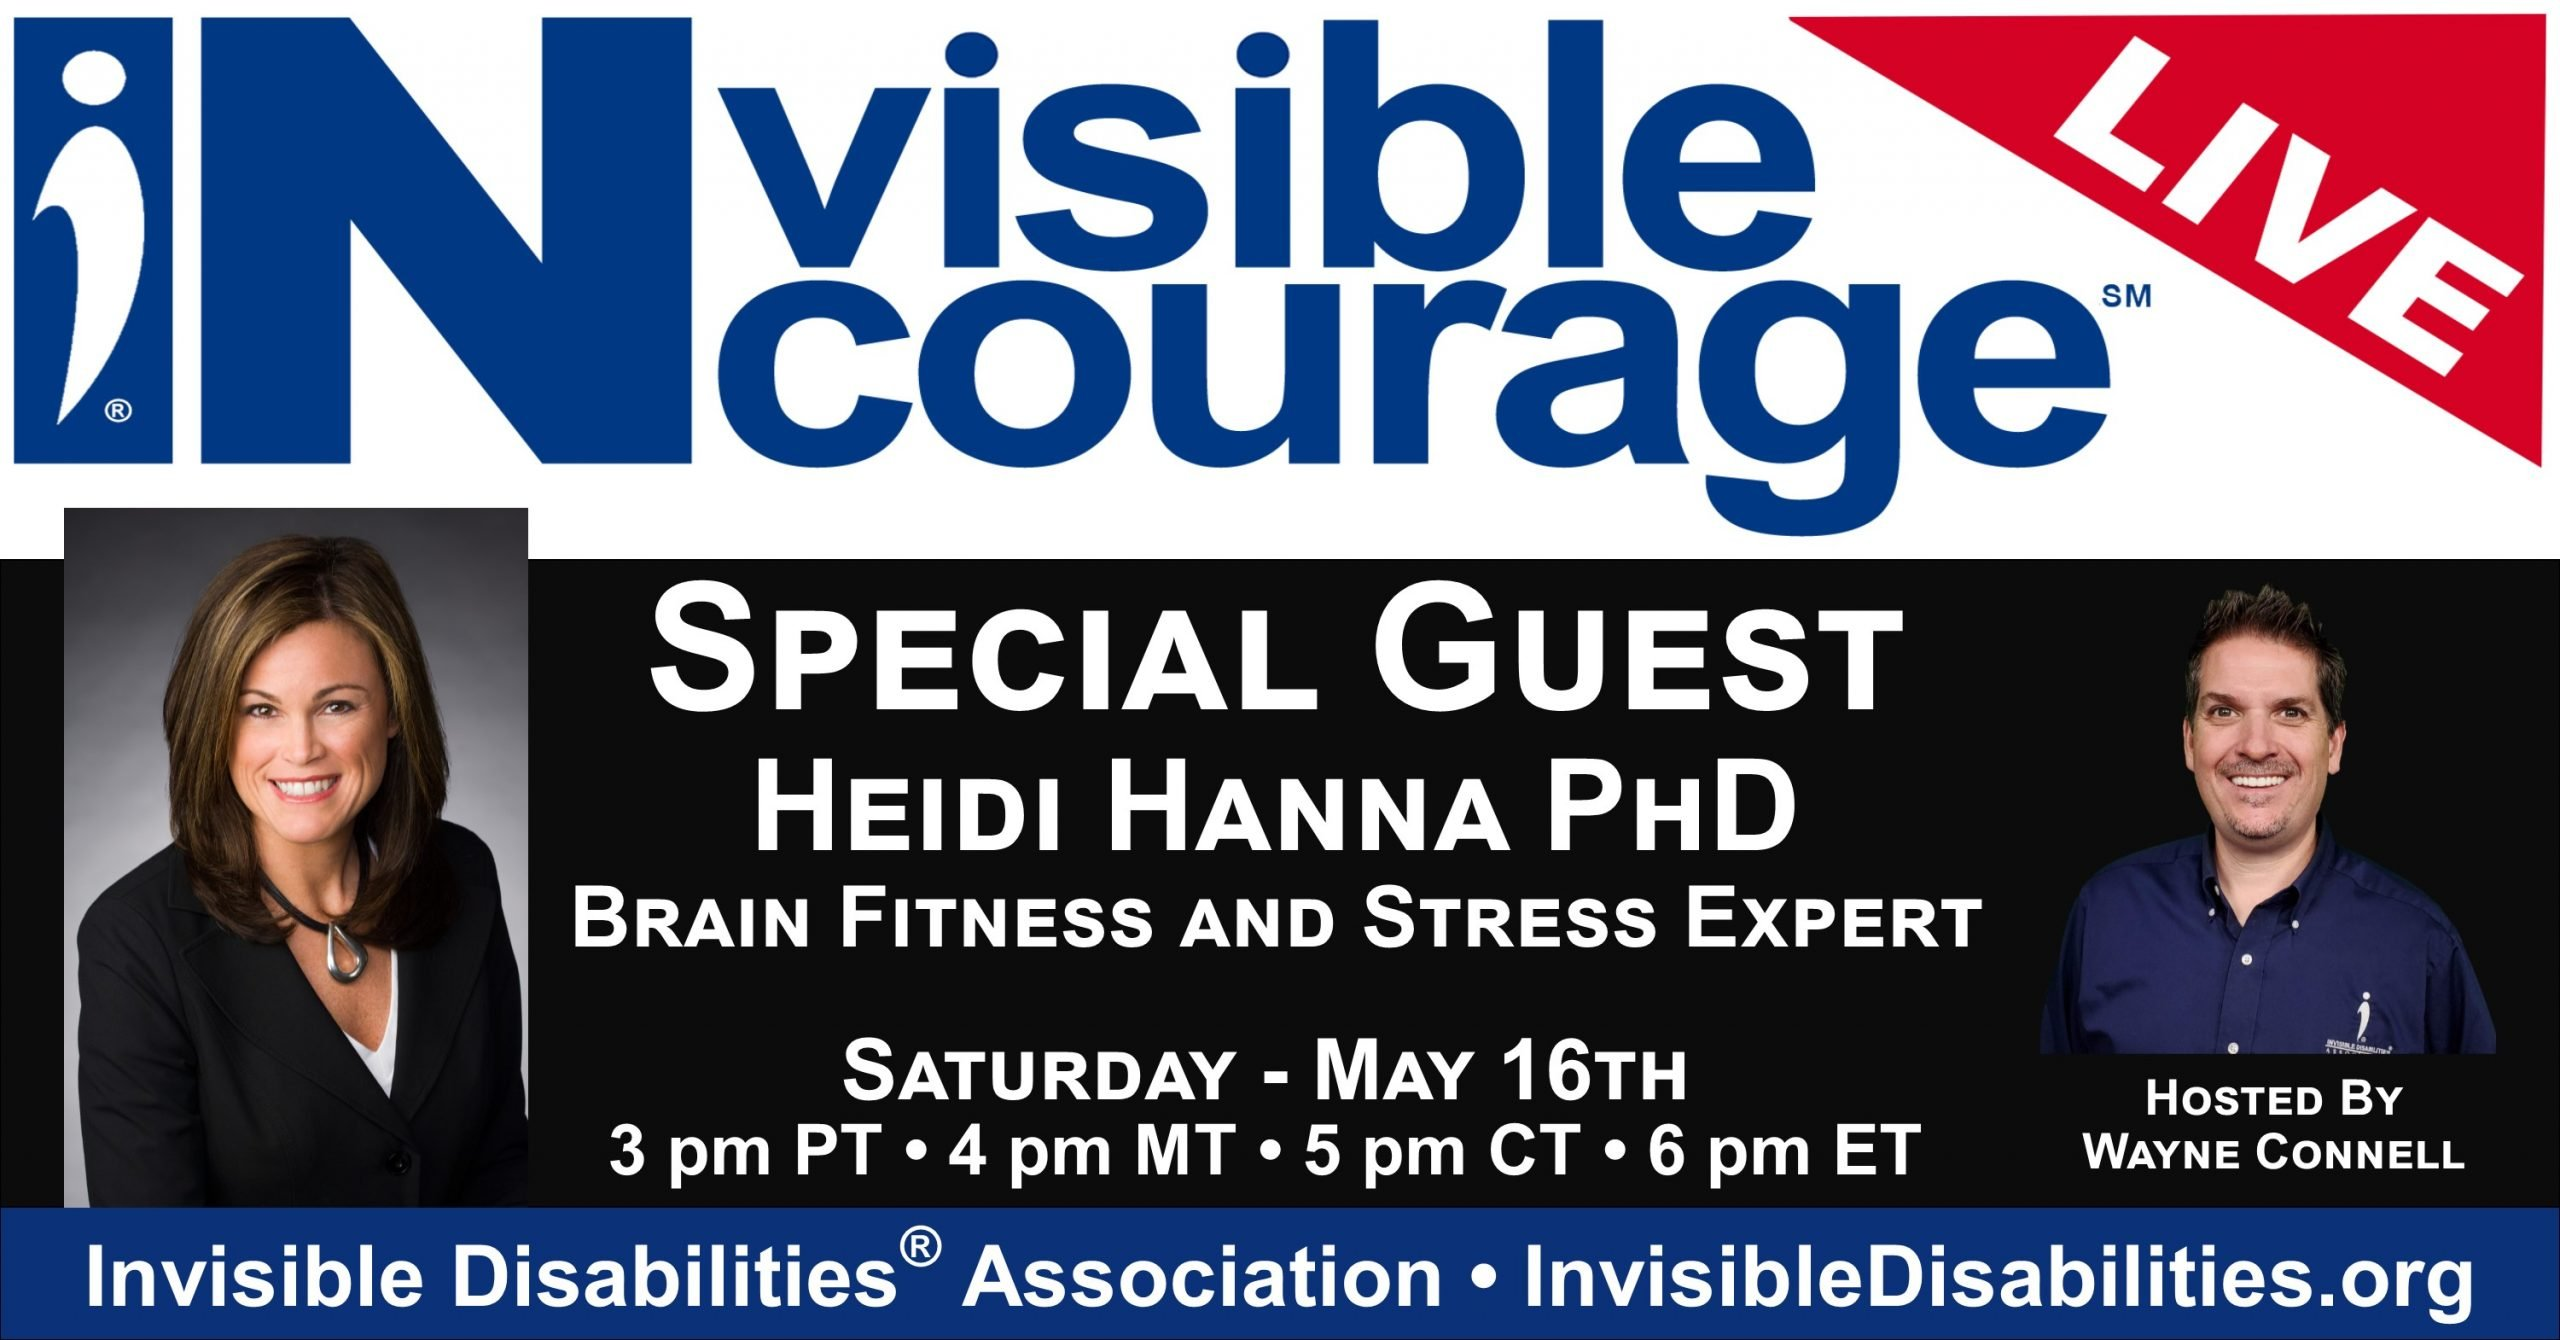 InVisible Encourage Live with Heidi Hanna PhD, Brain and Stress Expert - Invisible Disabilities Association